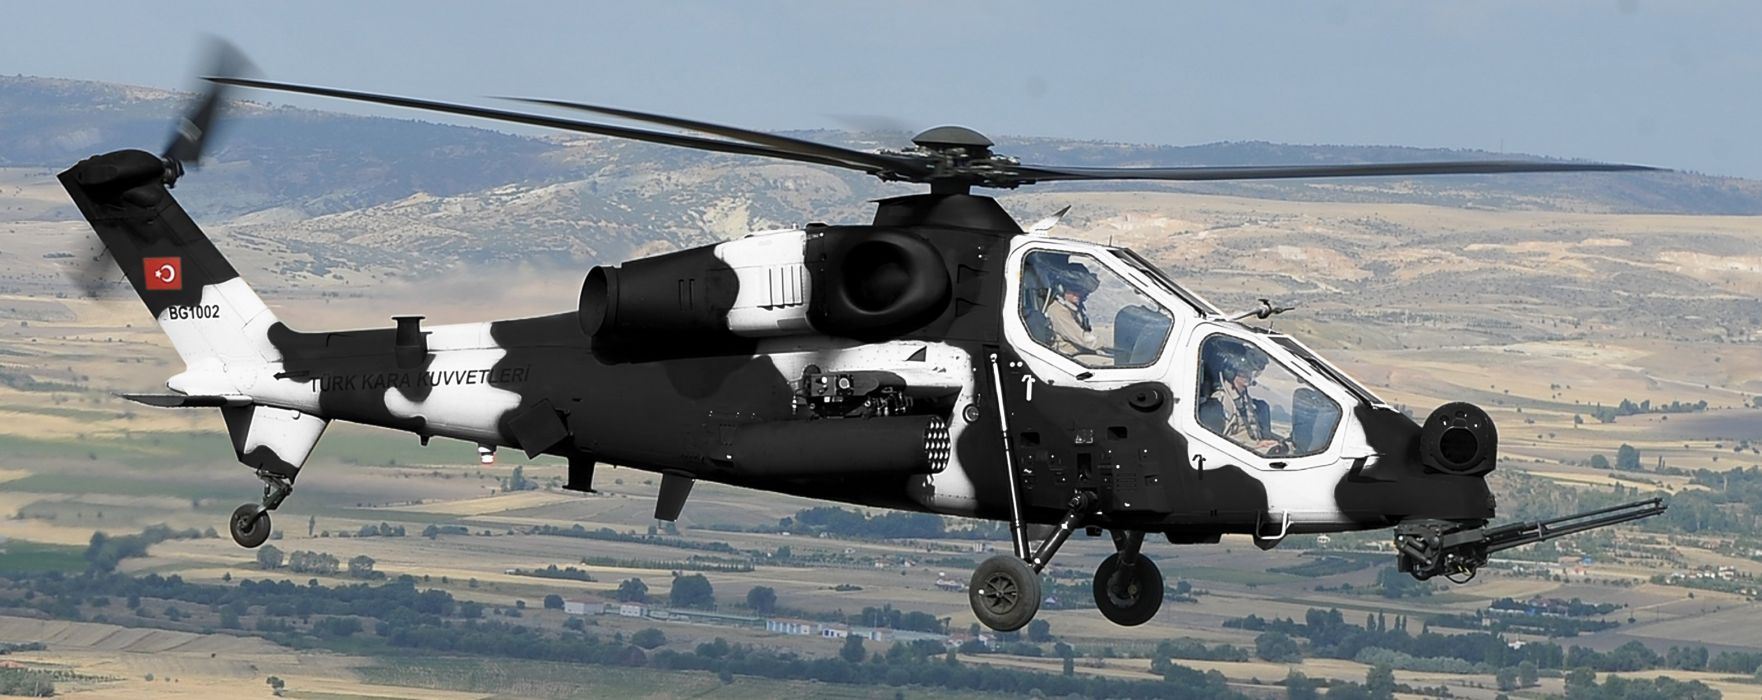 T129 ATTACK HELICOPTER raid atak weapon aircraft military (4) wallpaper